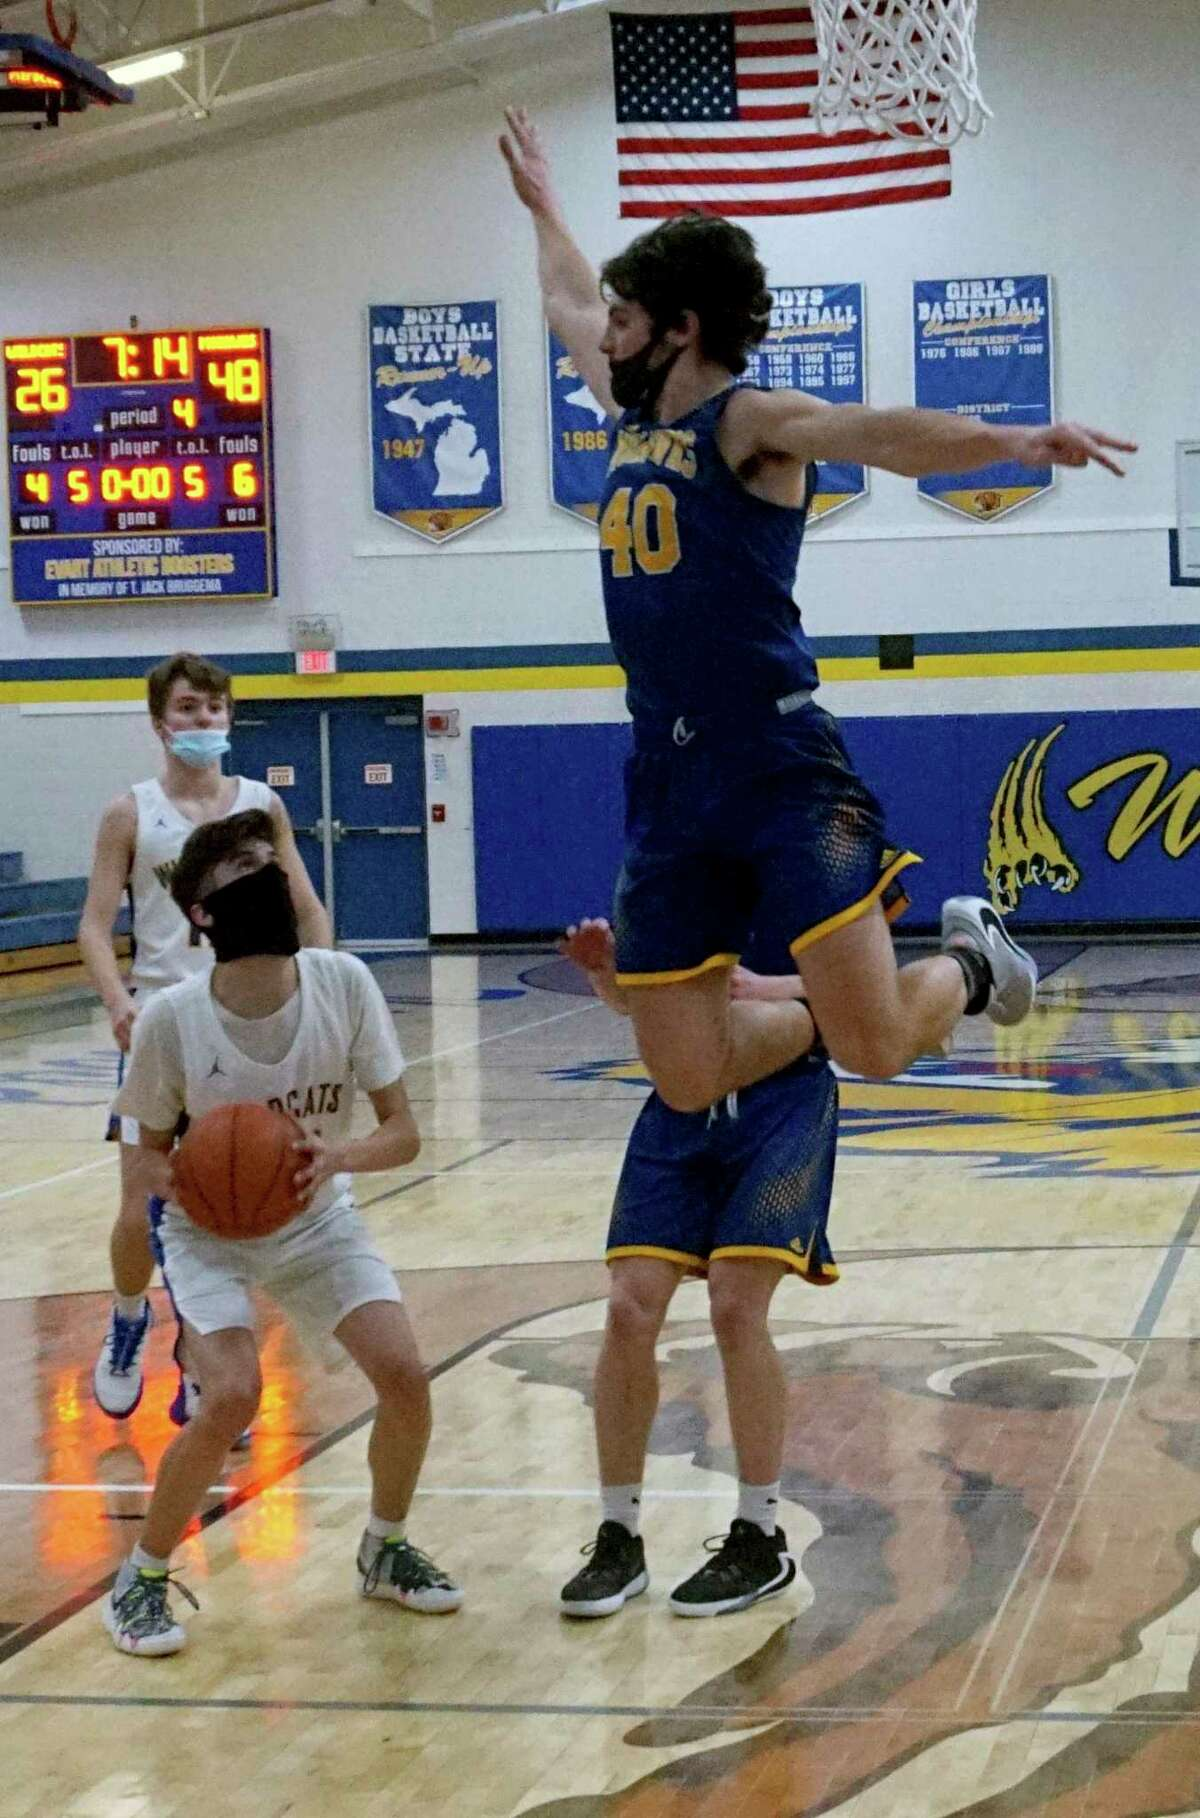 Carter Veldkamp, of Morley Stanwood, goes airborne in an attempt to block a shot from Evart's Cannan Morgan on Monday evening. (Pioneer photo/Joe Judd)